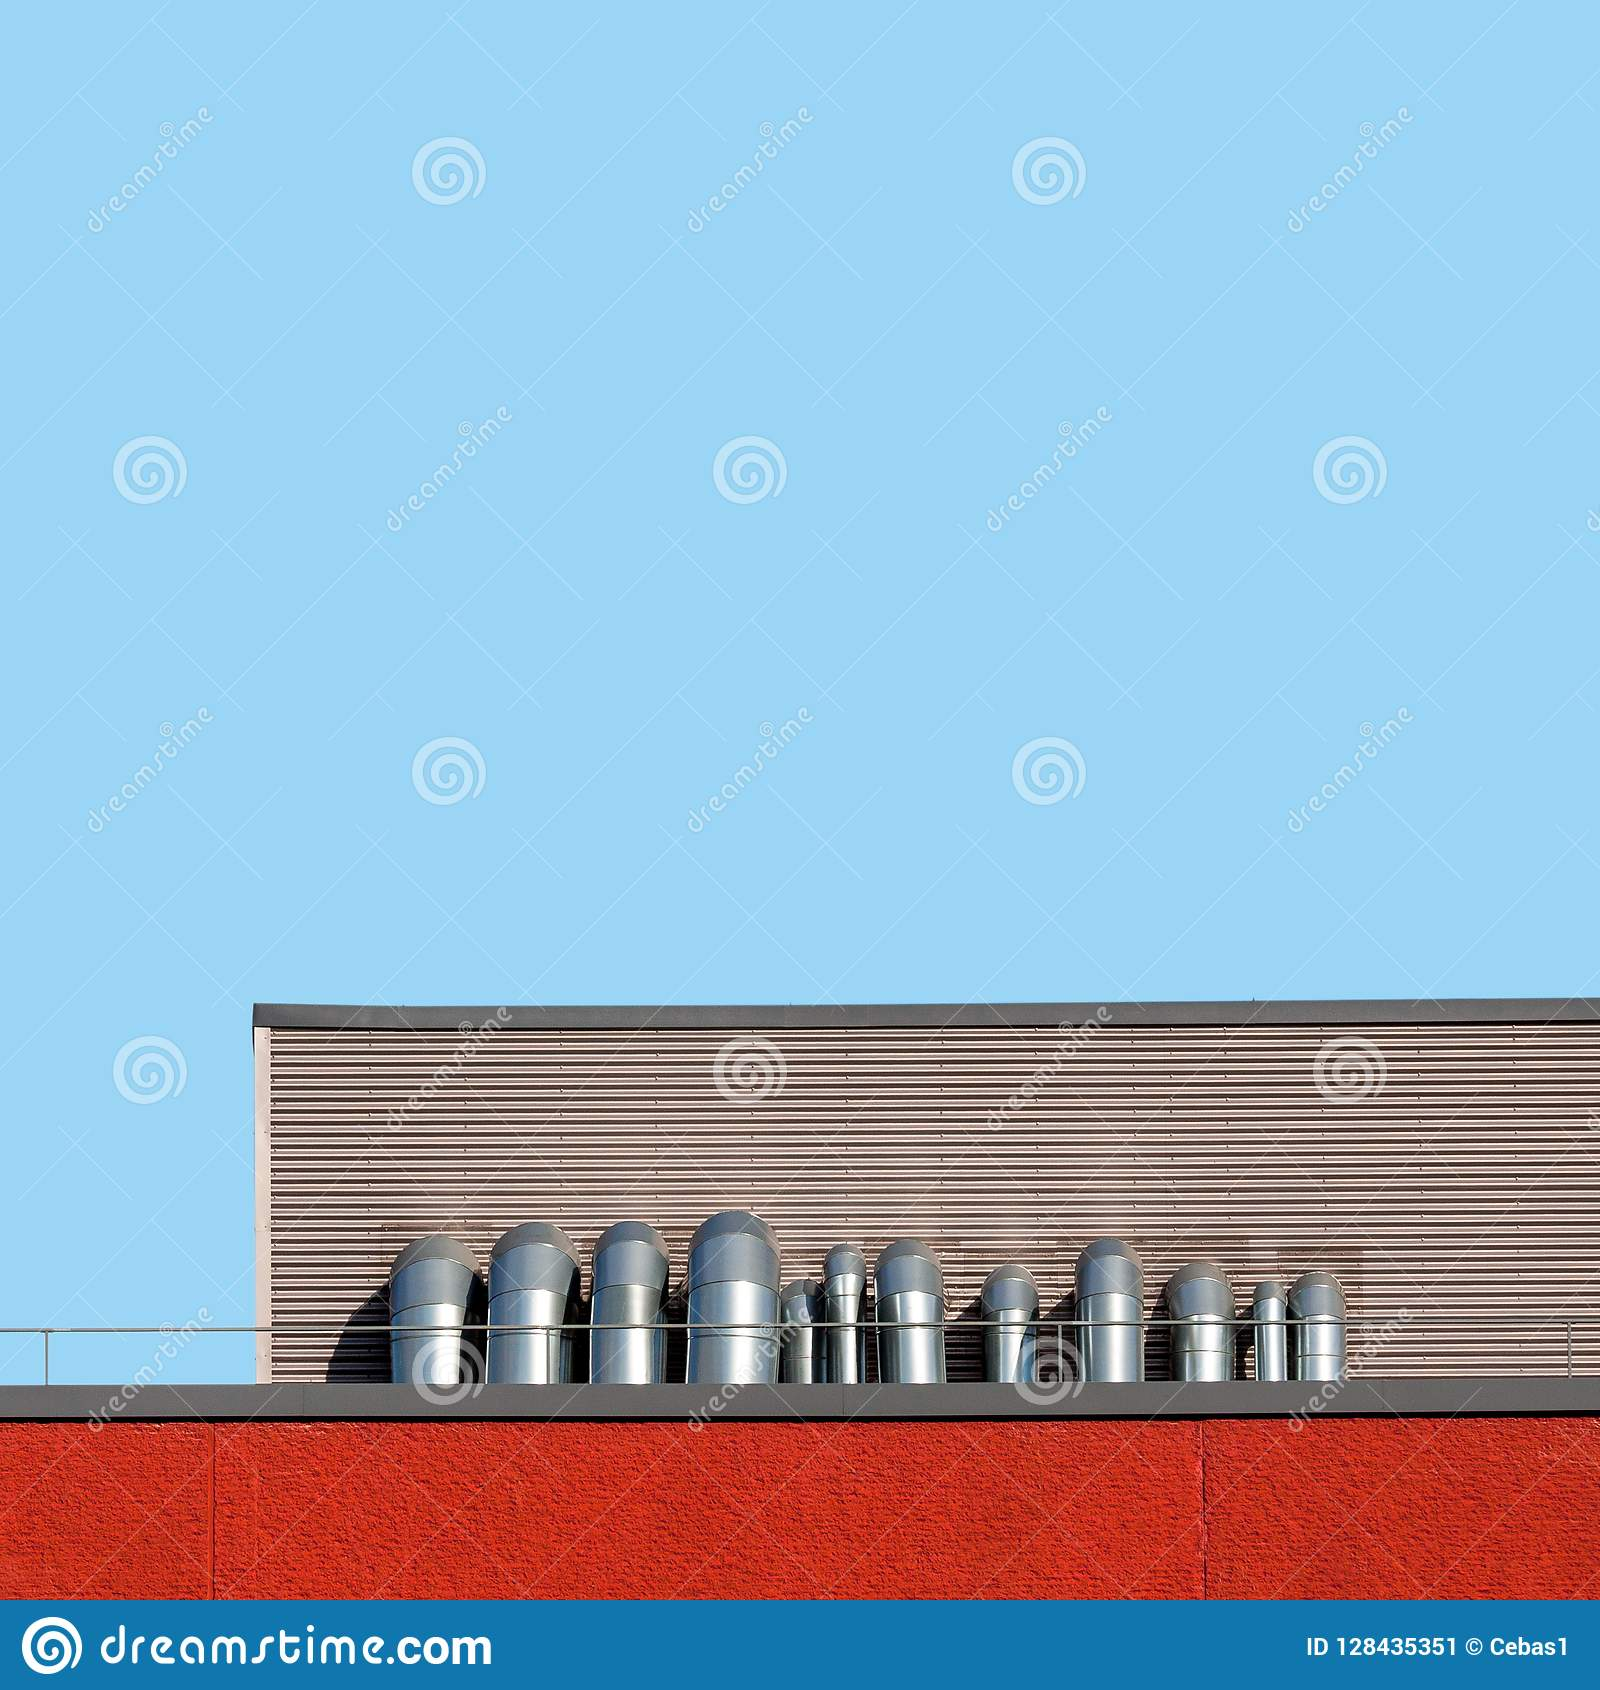 Abstract industrial architecture with roof and metal pipes